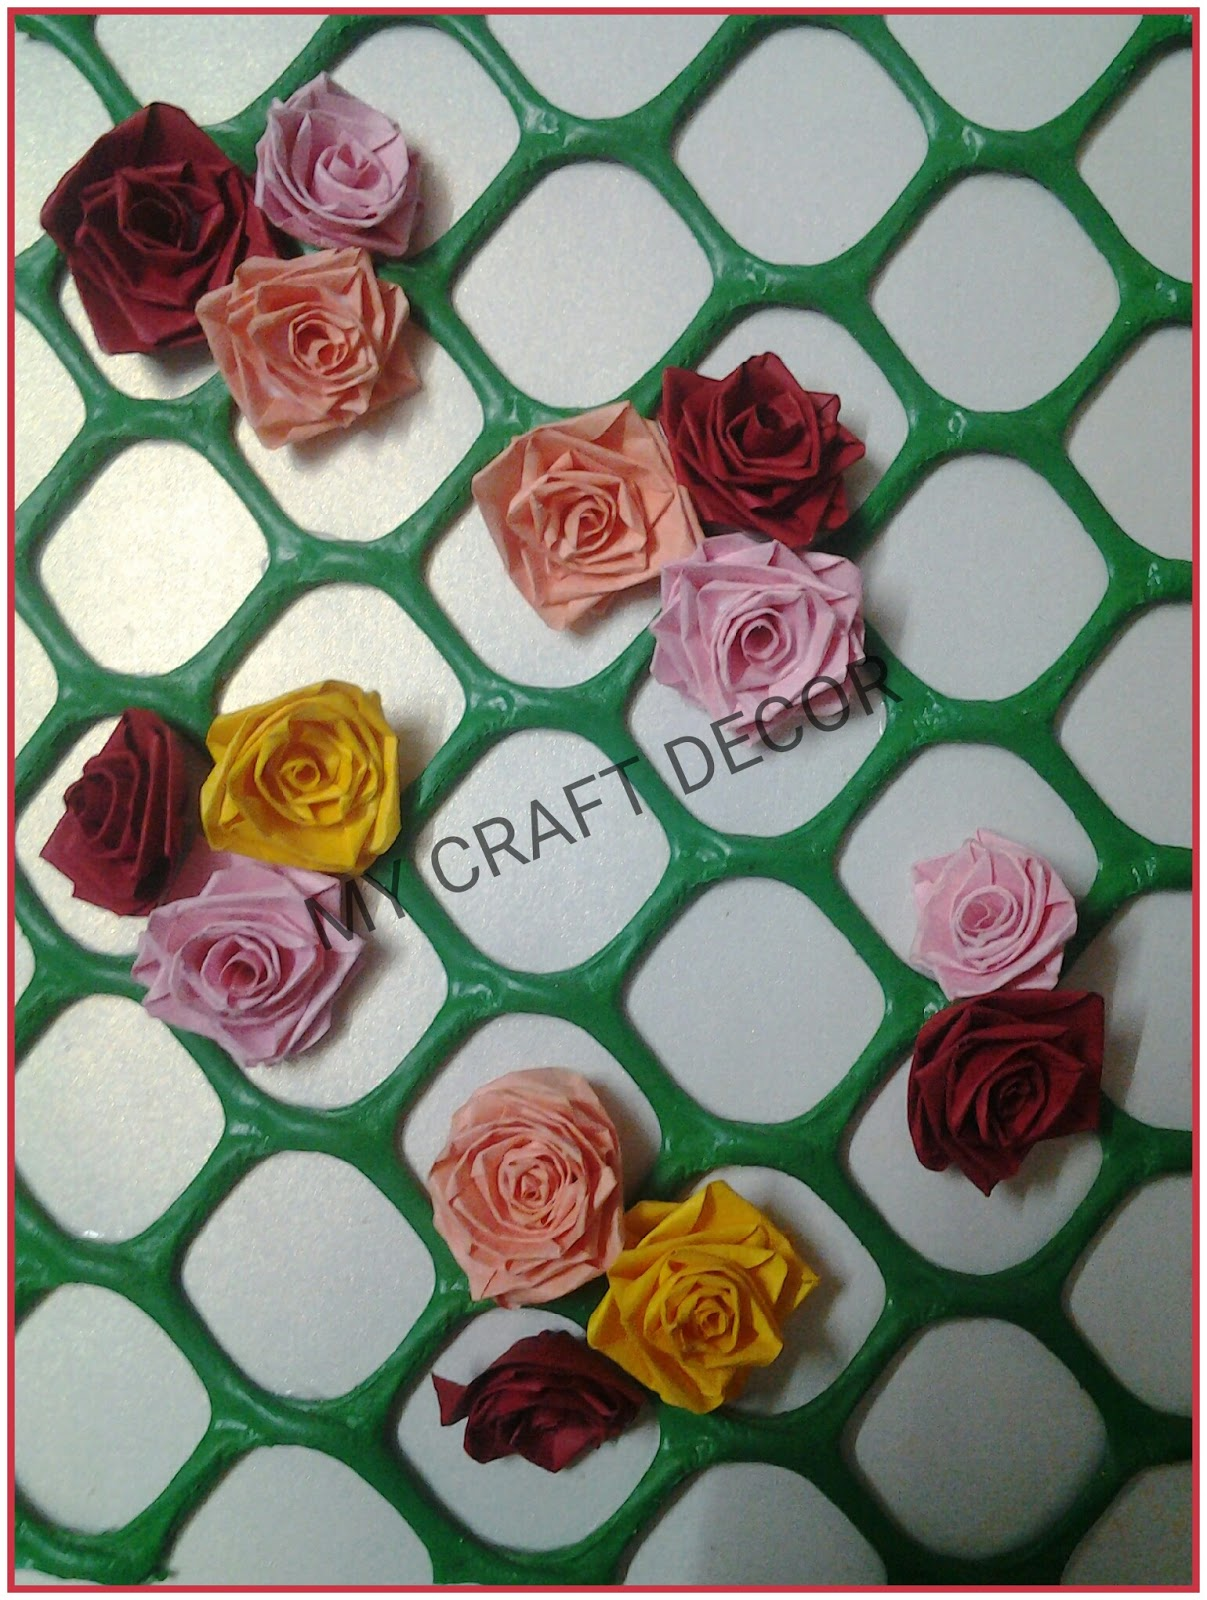 Craft decor quilling roses for back ground i used green mesh and made paper leaves following is basic arrangement of quilled roses mightylinksfo